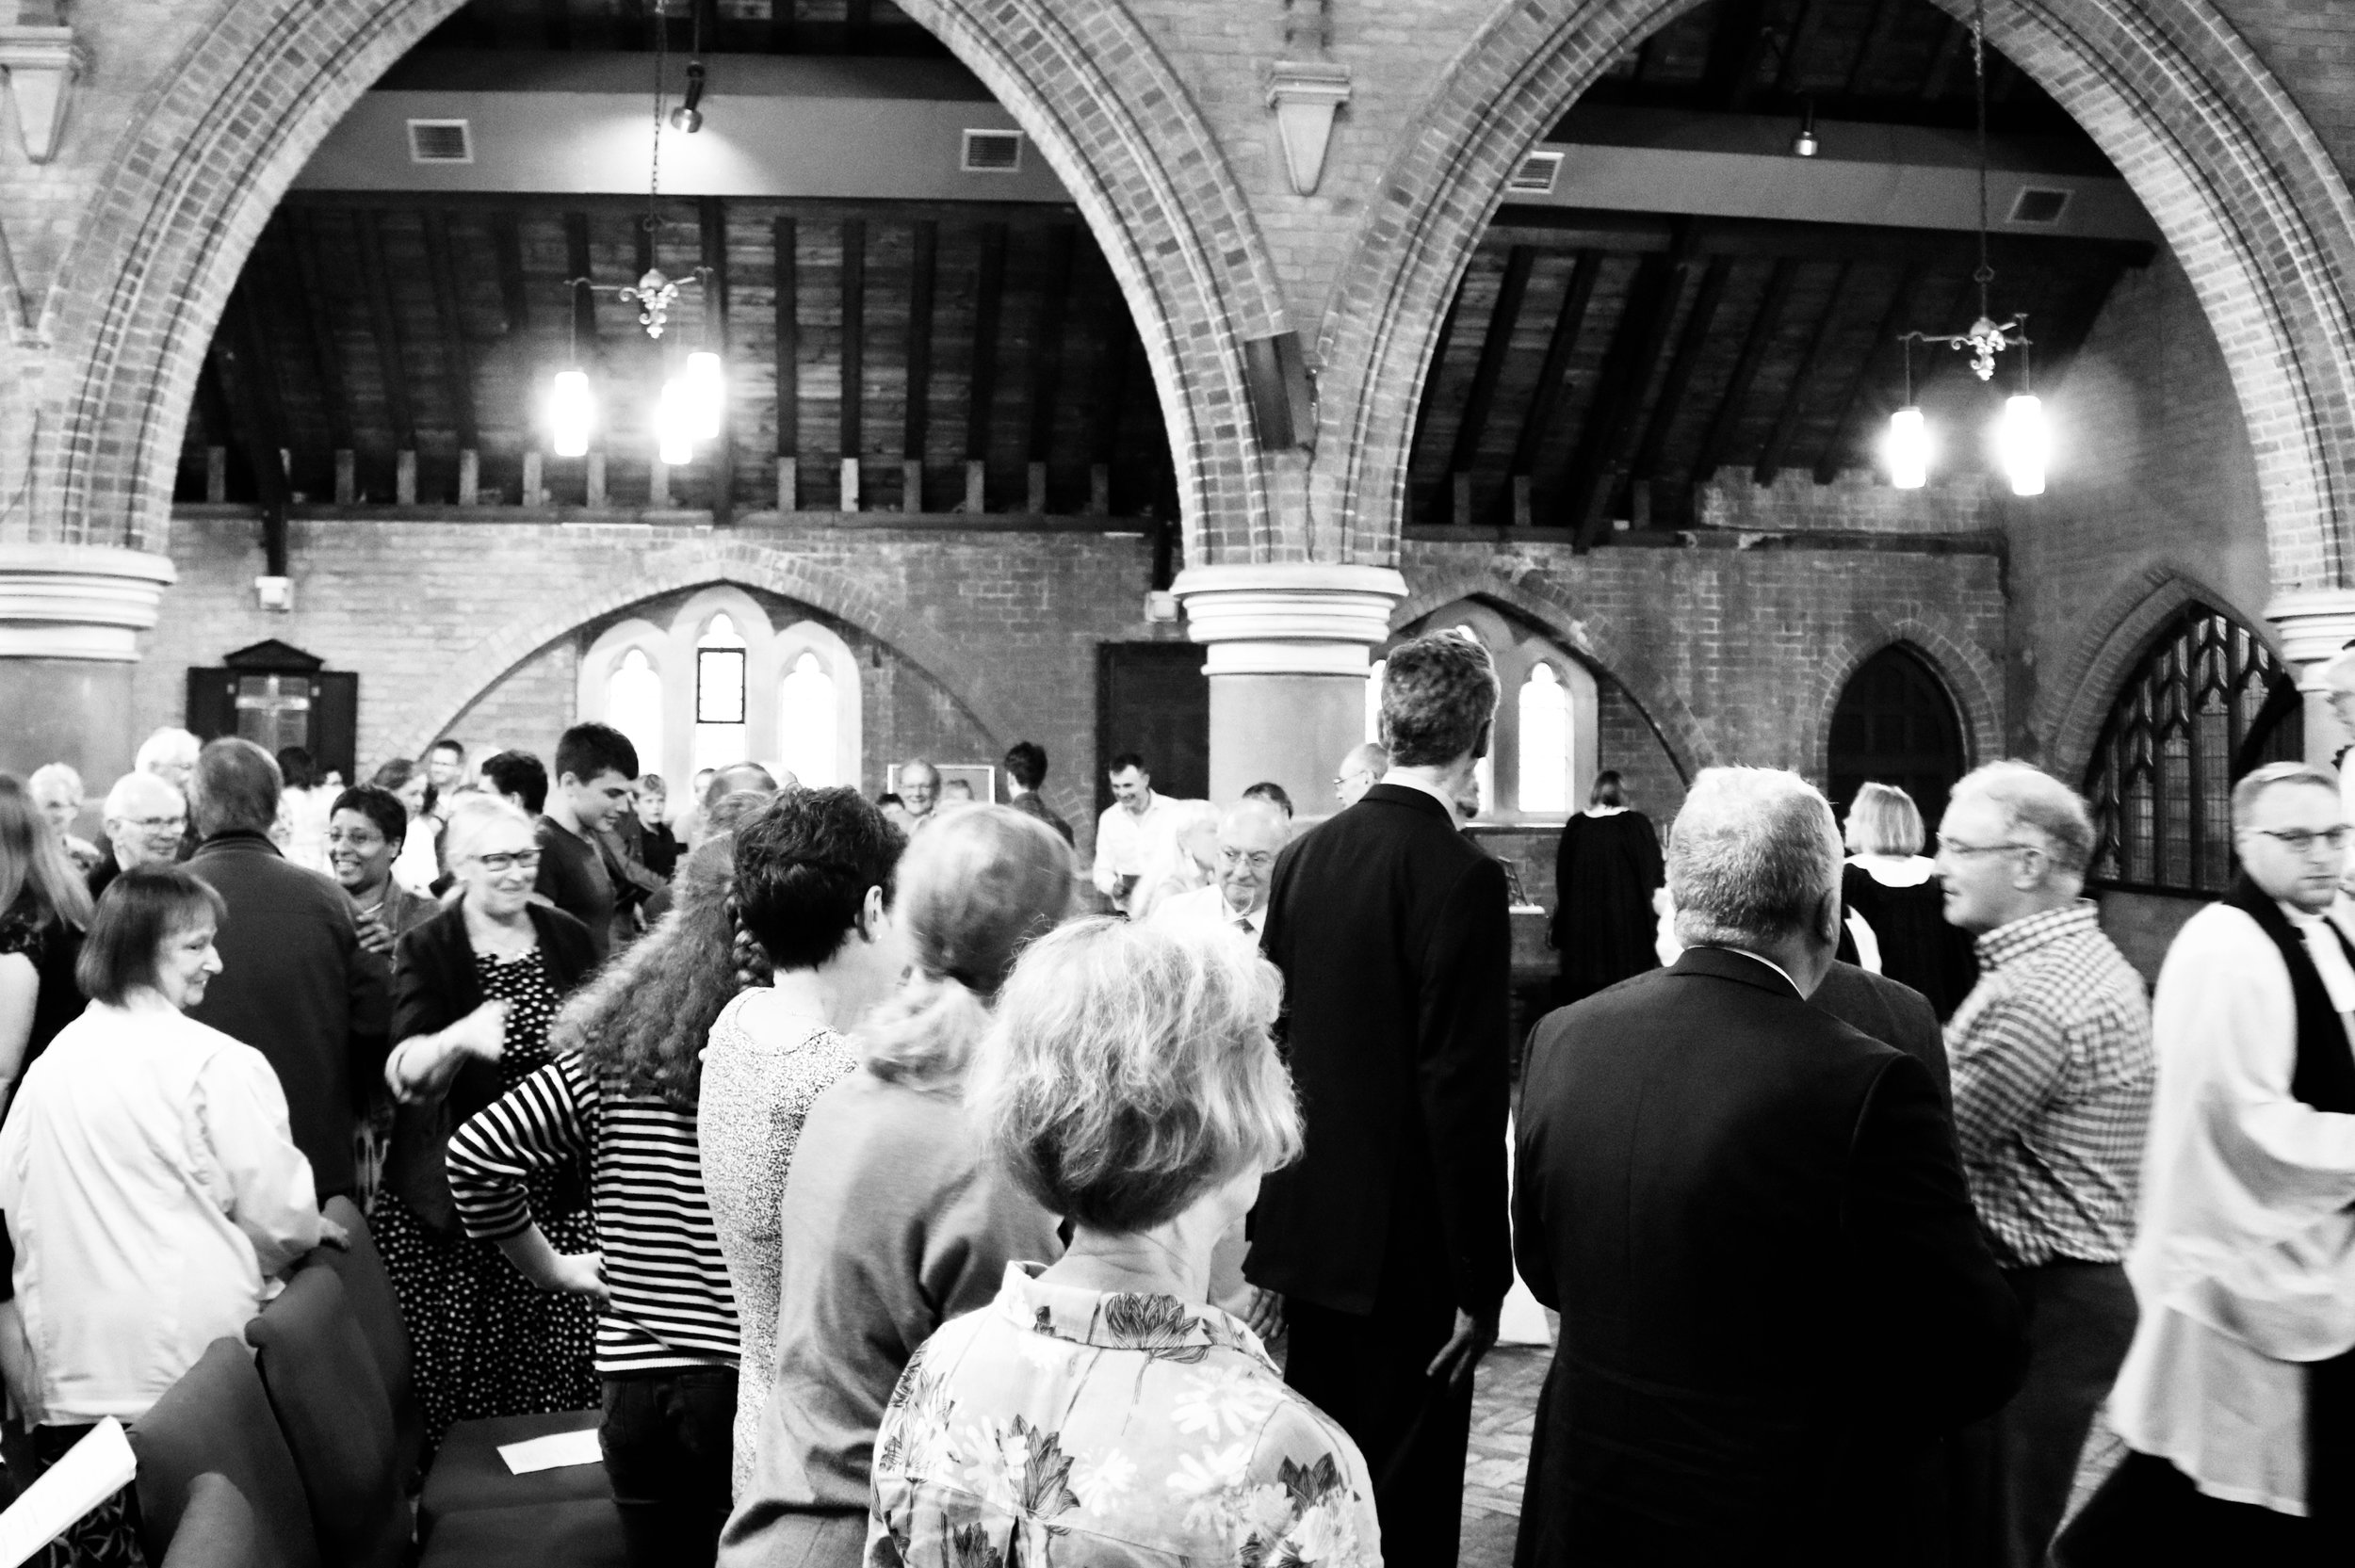 Sunday Worship - You are most welcome.The 9.00 is a service of Holy Communion. This is a liturgically led, contemplative service set in the historical worship of the Church of England. It allows for quiet space to think, listen and pray, whilst being led in worship by our chosen liturgy, and Choir. Our organist and choir lead us in well known hymns and anthemsBetween the services we have coffee. from 10am coffee is served at the back of church, please do come and join us before the 10.30 for a drink.The 10.30 is a gathering of worship and word. It has an informal feel, with kids groups and a crèche available during the service. We like to take time to worship as a collective and individually, with space to reflect in worship on the talk and receive prayer ministry.We welcome children who make a noise, so please do not feel that your kids might be a hindrance to our worship. Family is family.